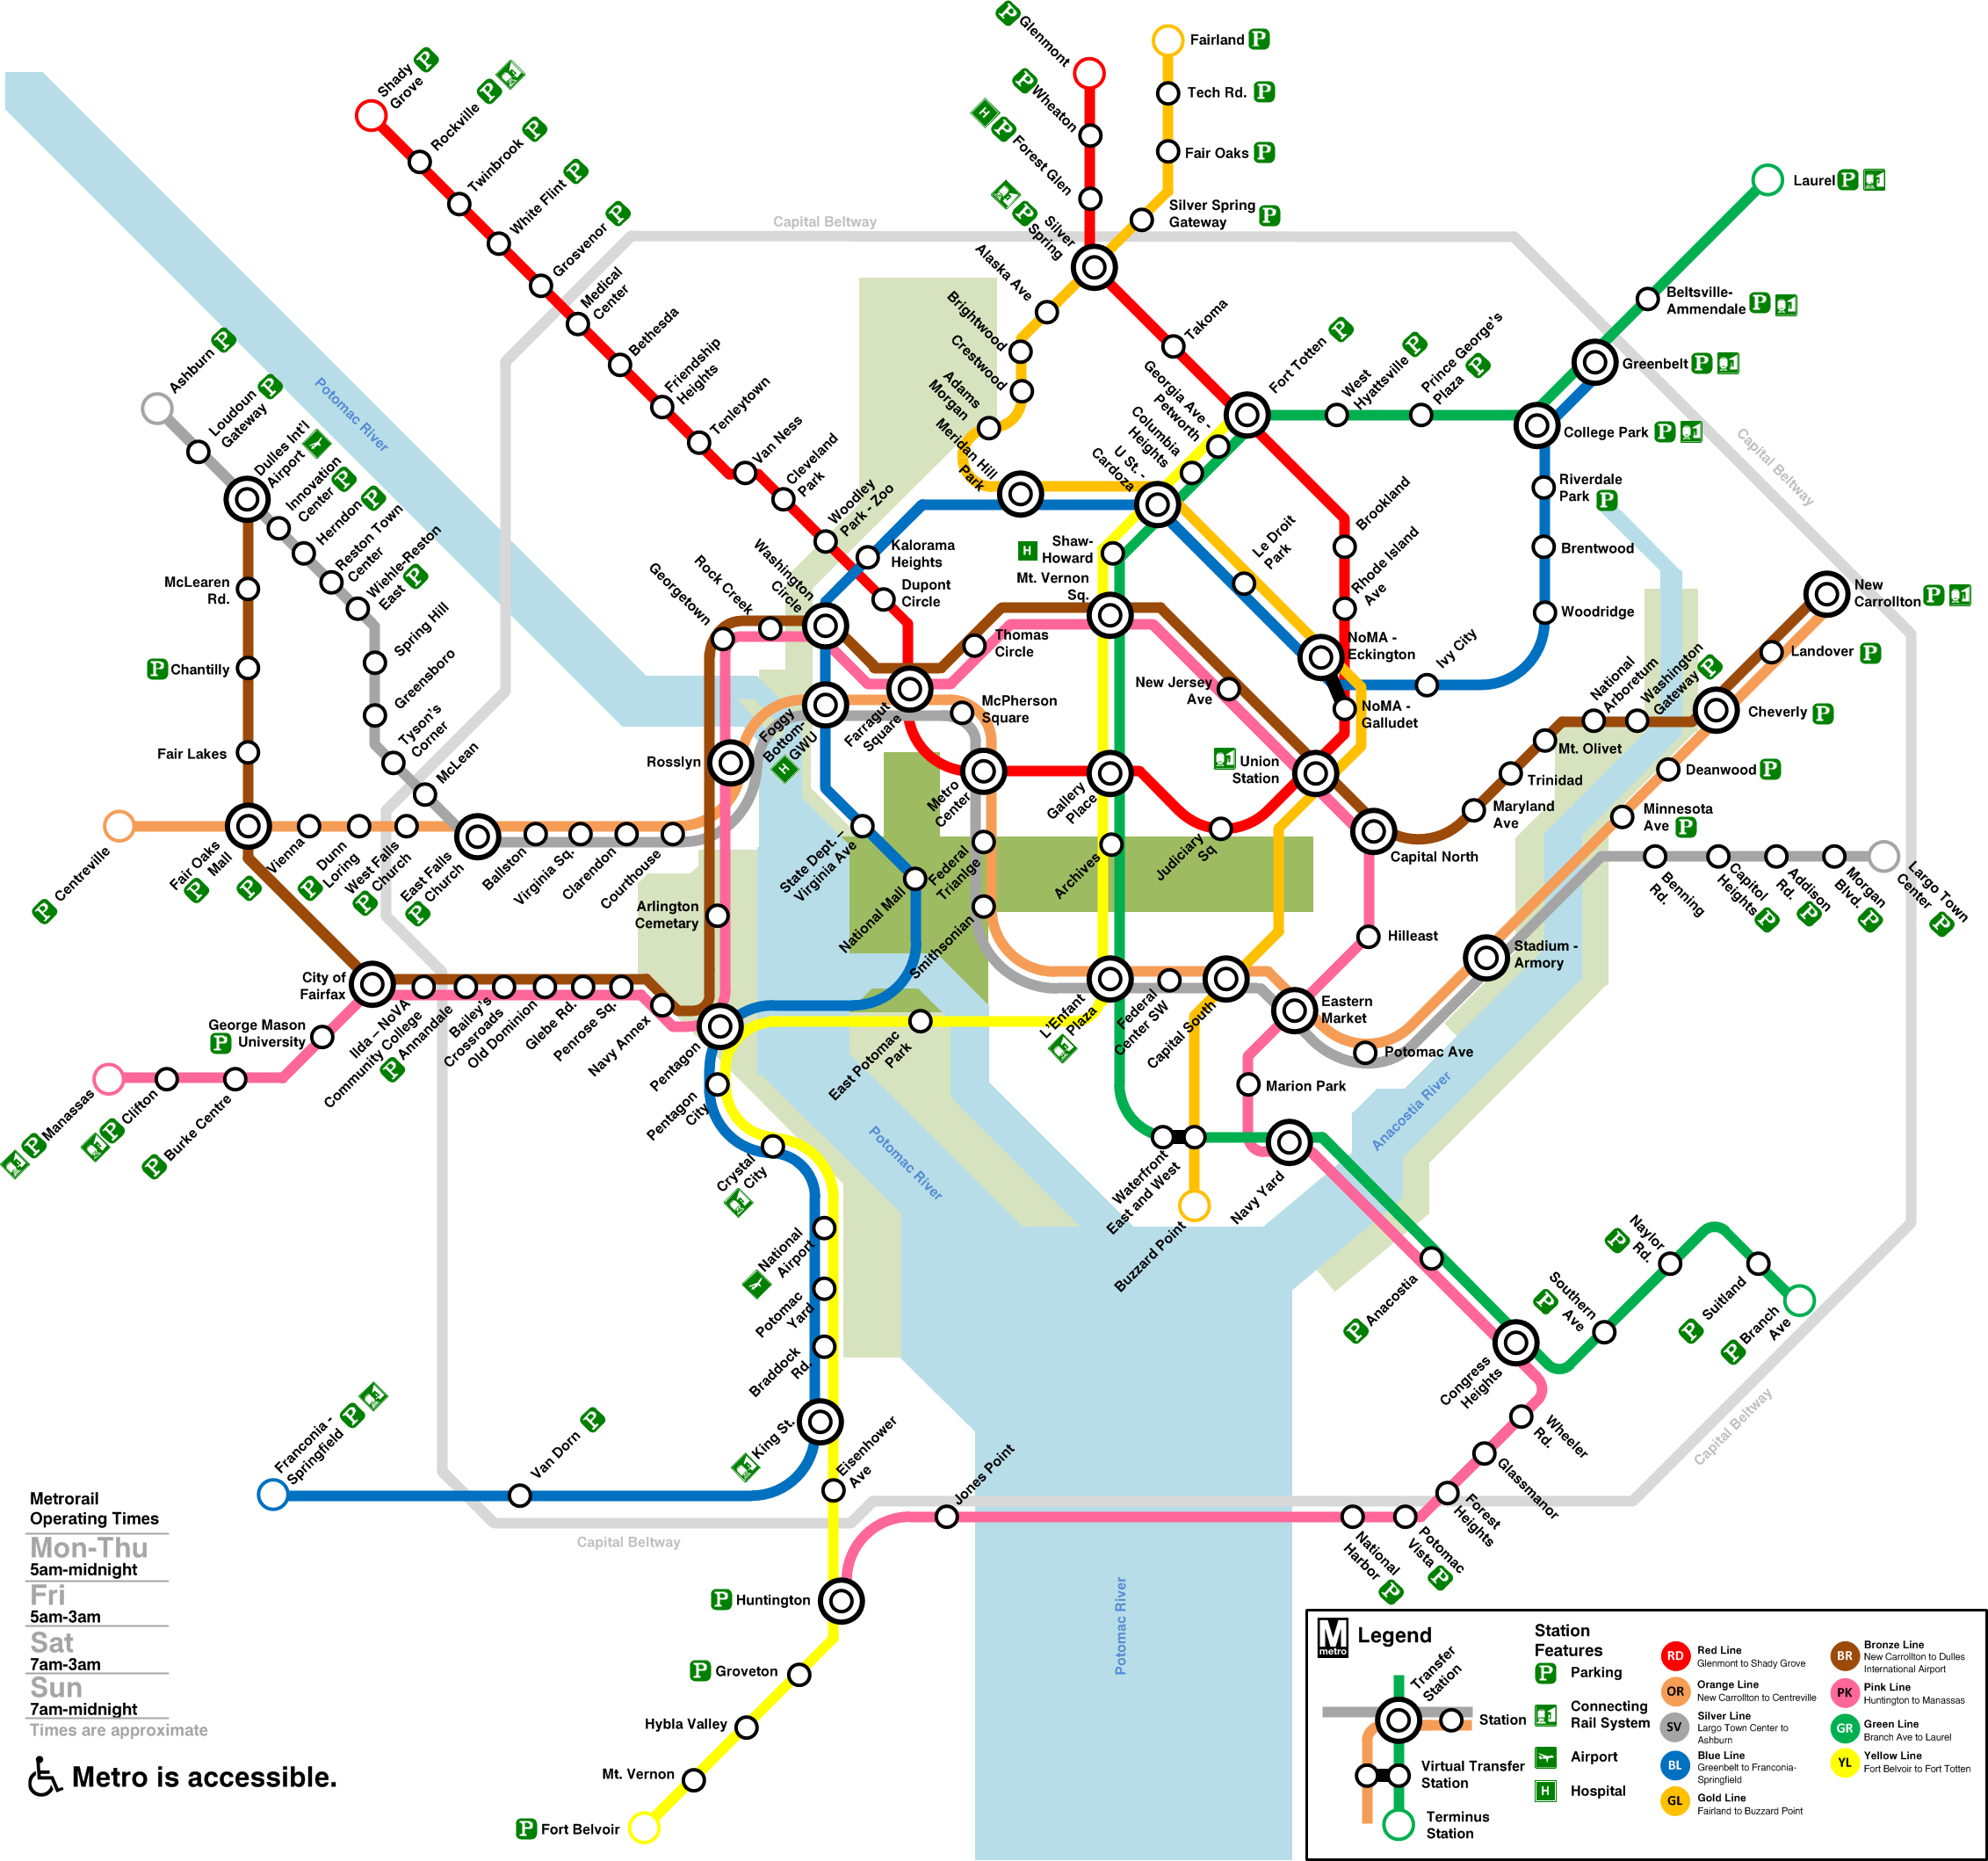 A Map Of The Expanded Washington DC Metro Made By Reddit User - Los angeles metro expansion map